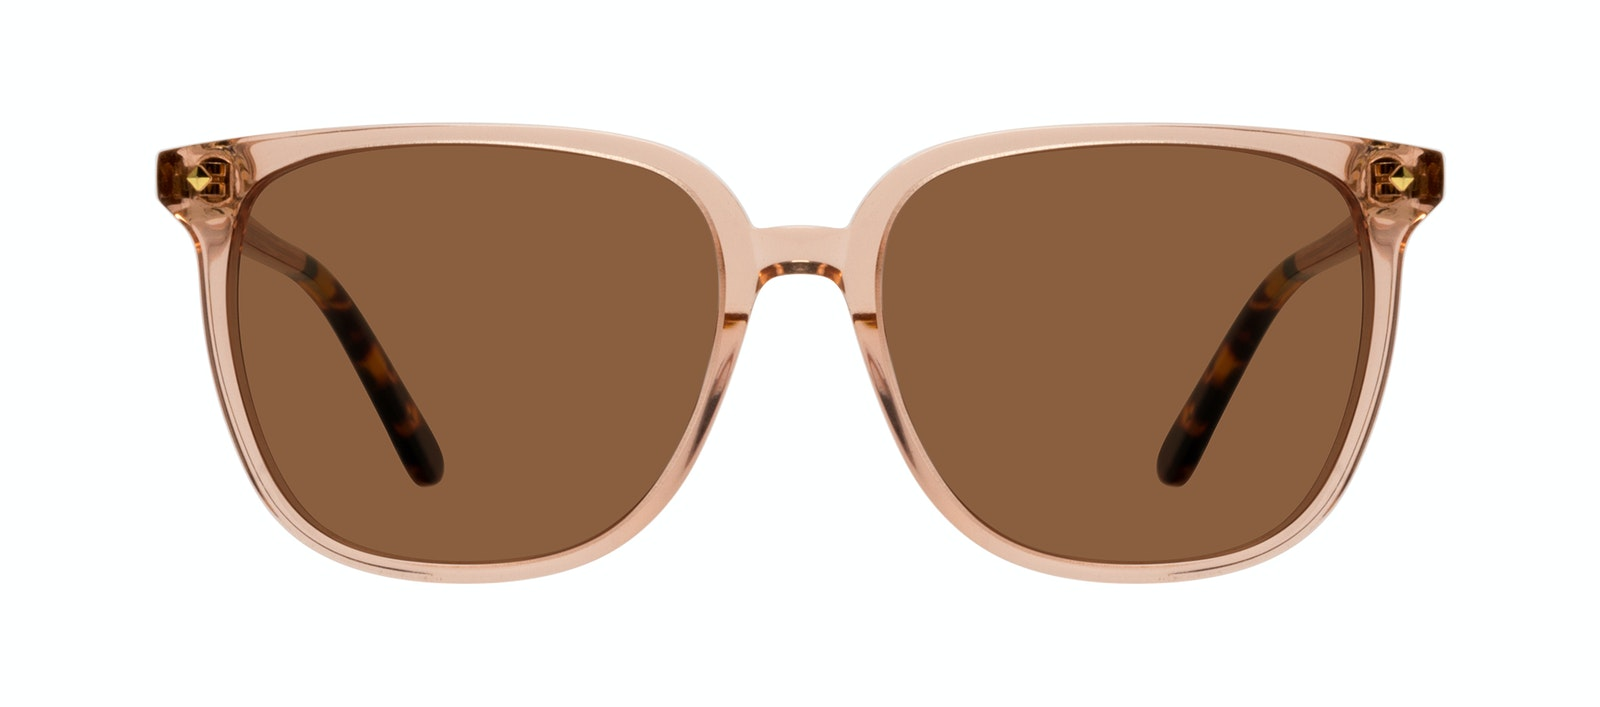 Affordable Fashion Glasses Sunglasses Women Gia Peach Front